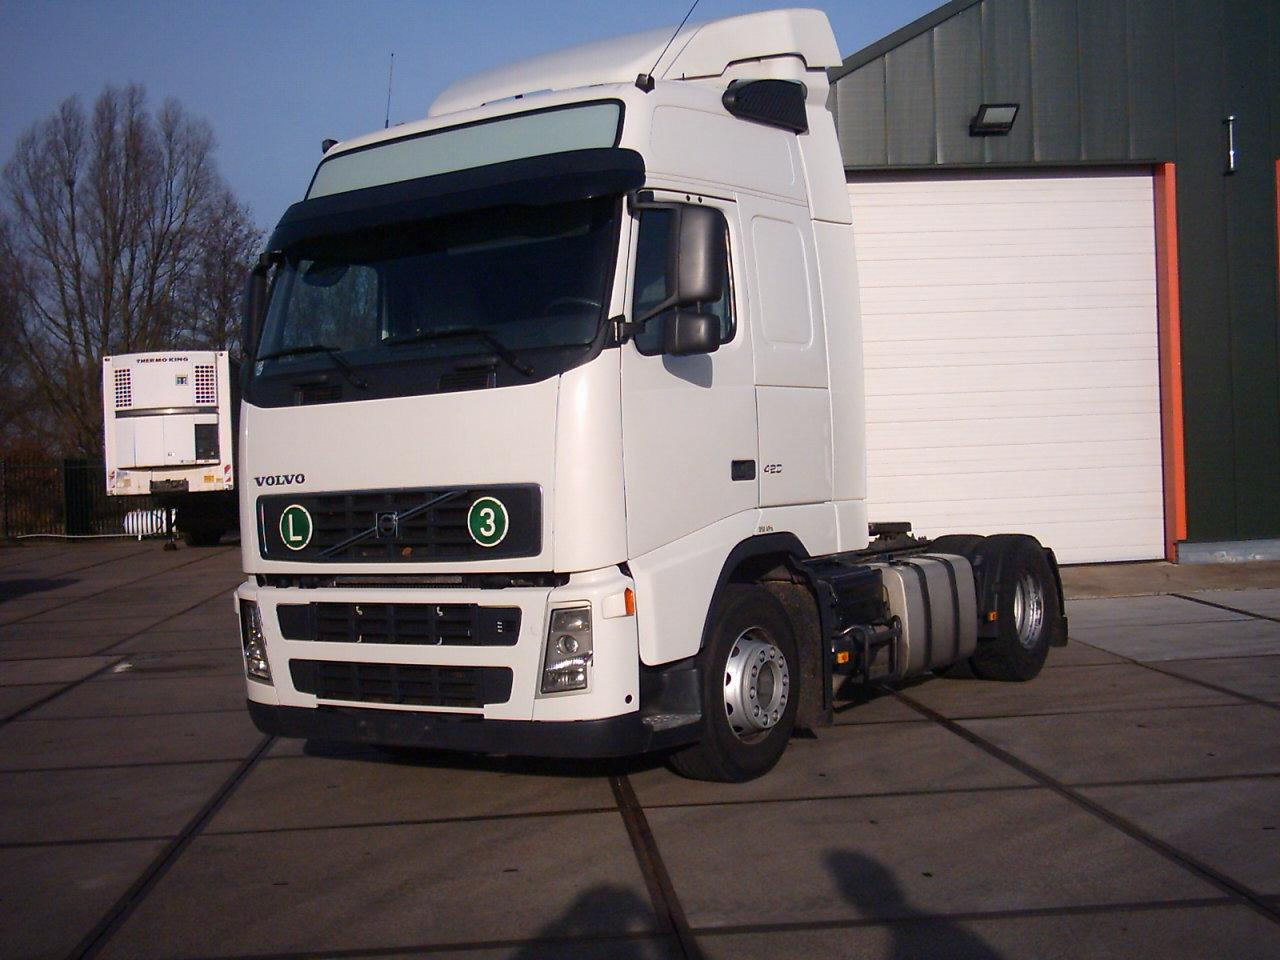 Volvo fh12 420 of 2004 used truck tractor heads buy 10778 product on alibaba com